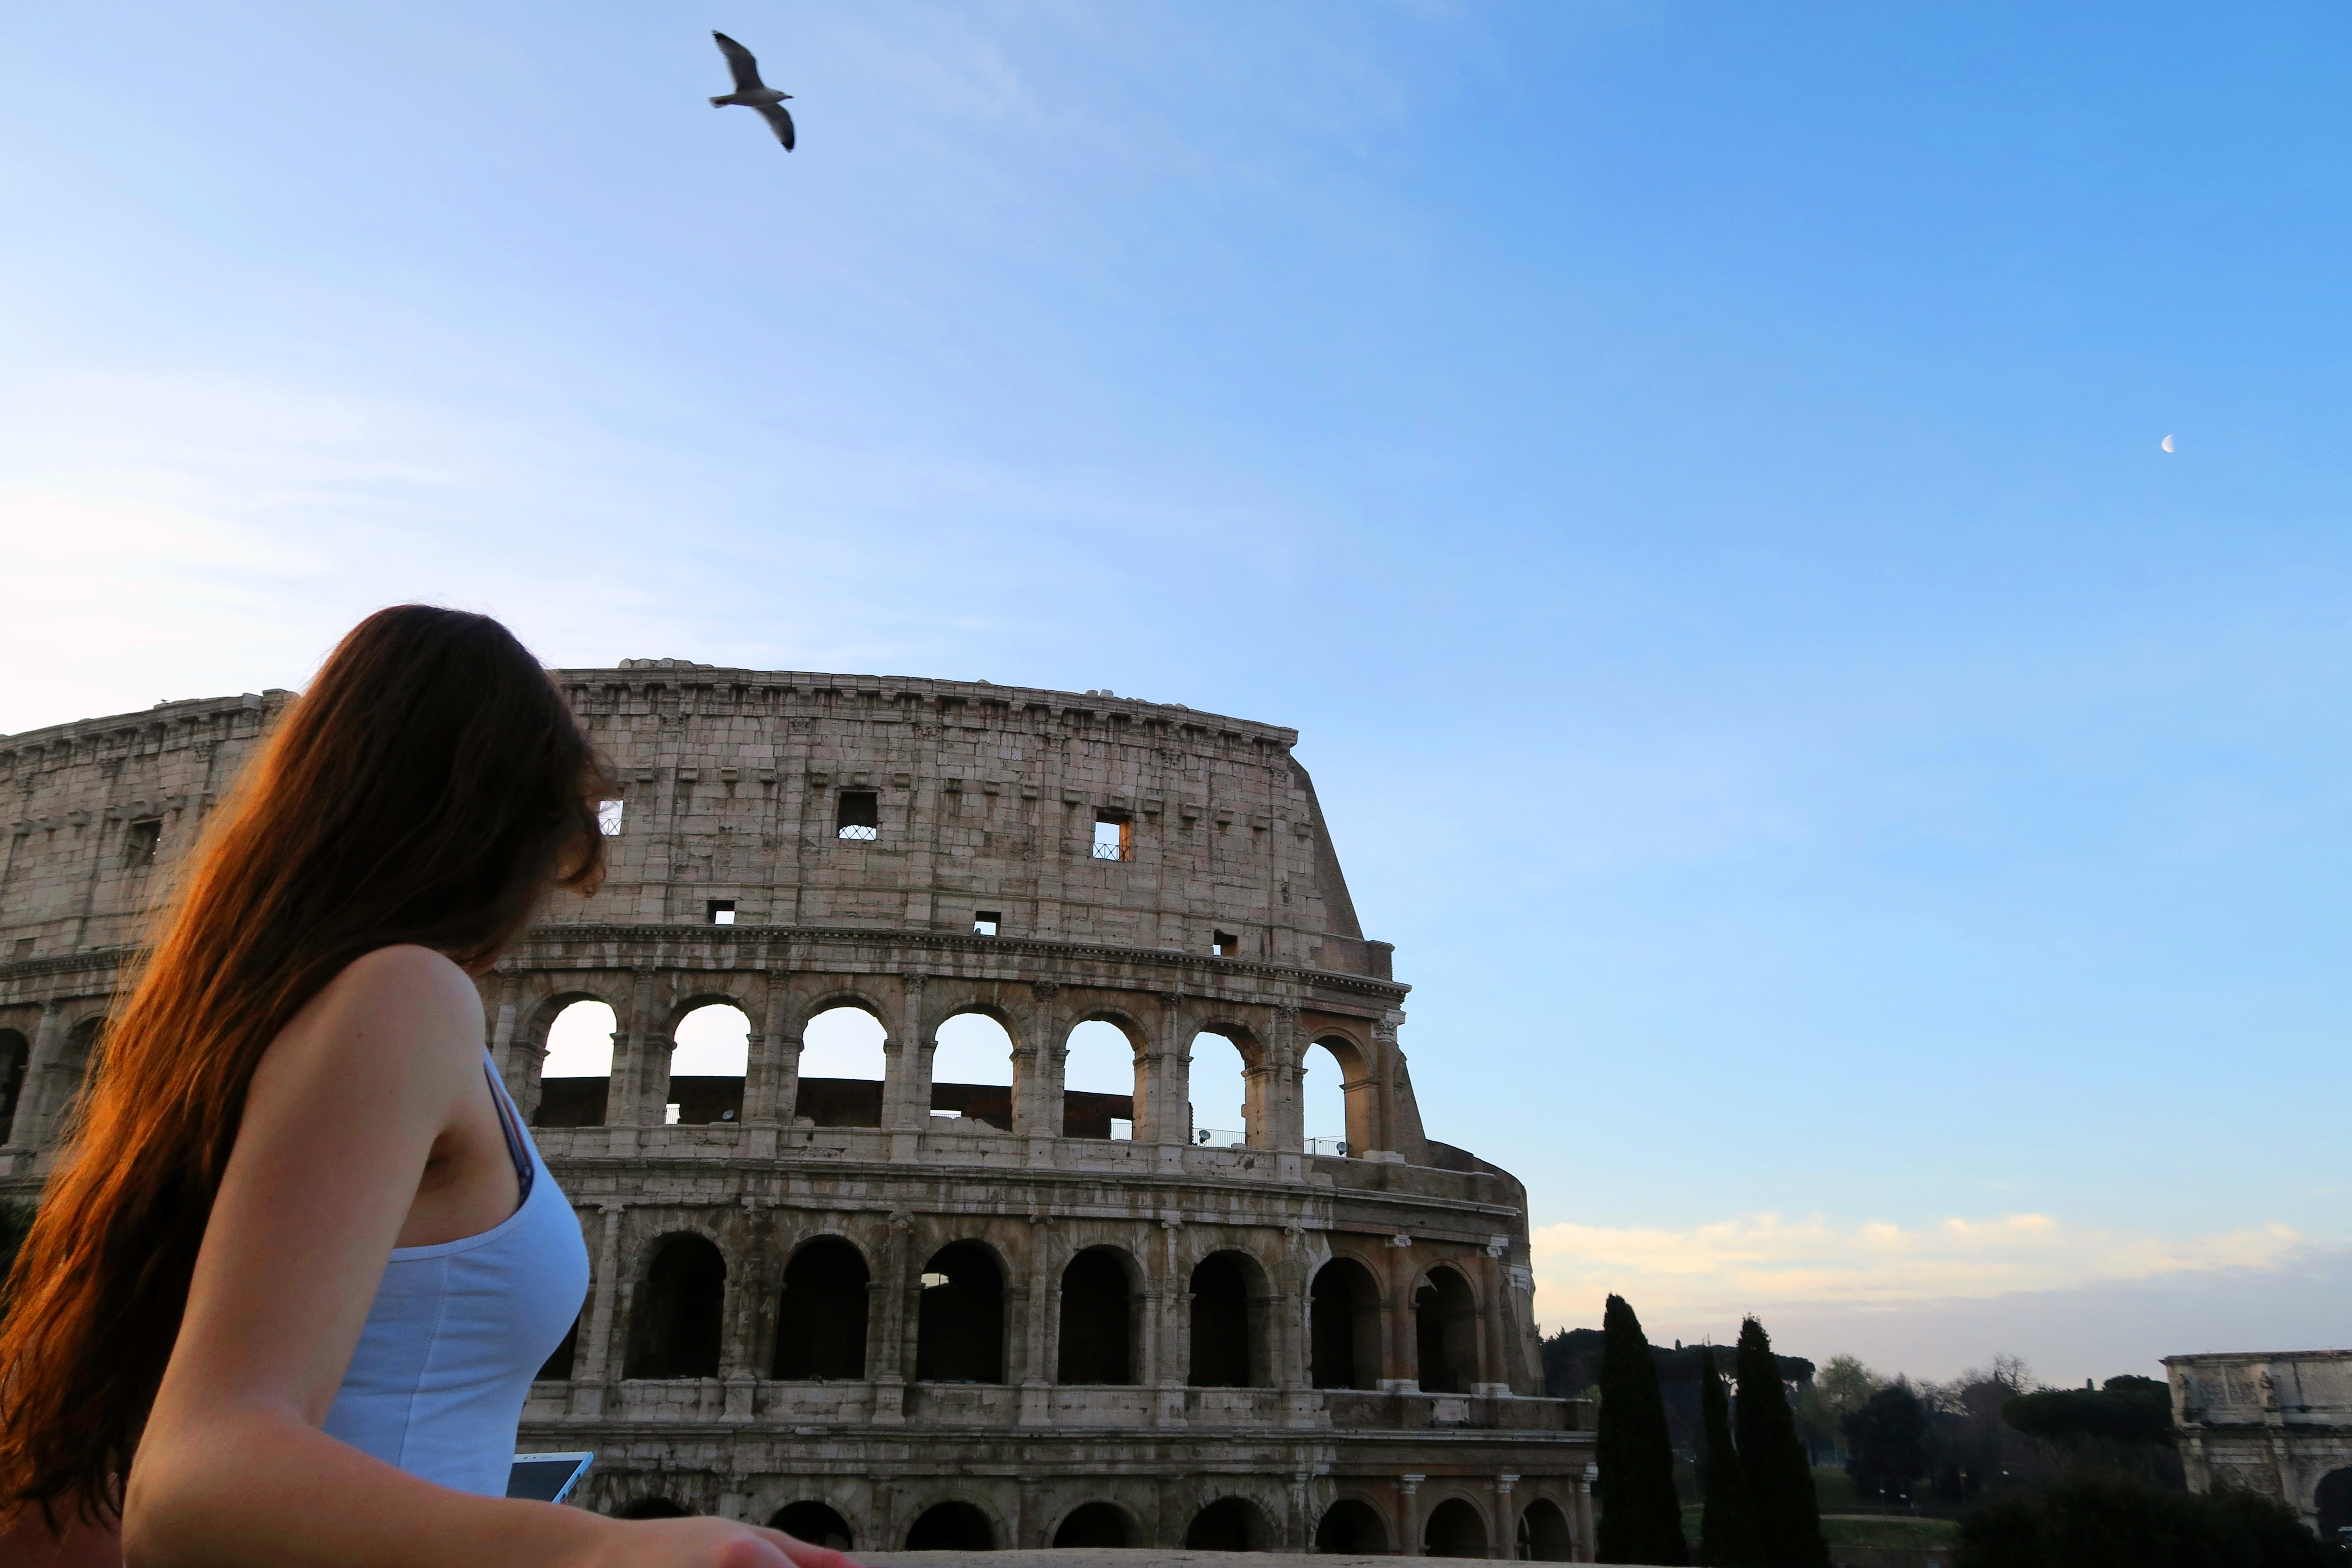 Girl standing in fron of Colosseum Rome Italy at sunrise. Blue sky.